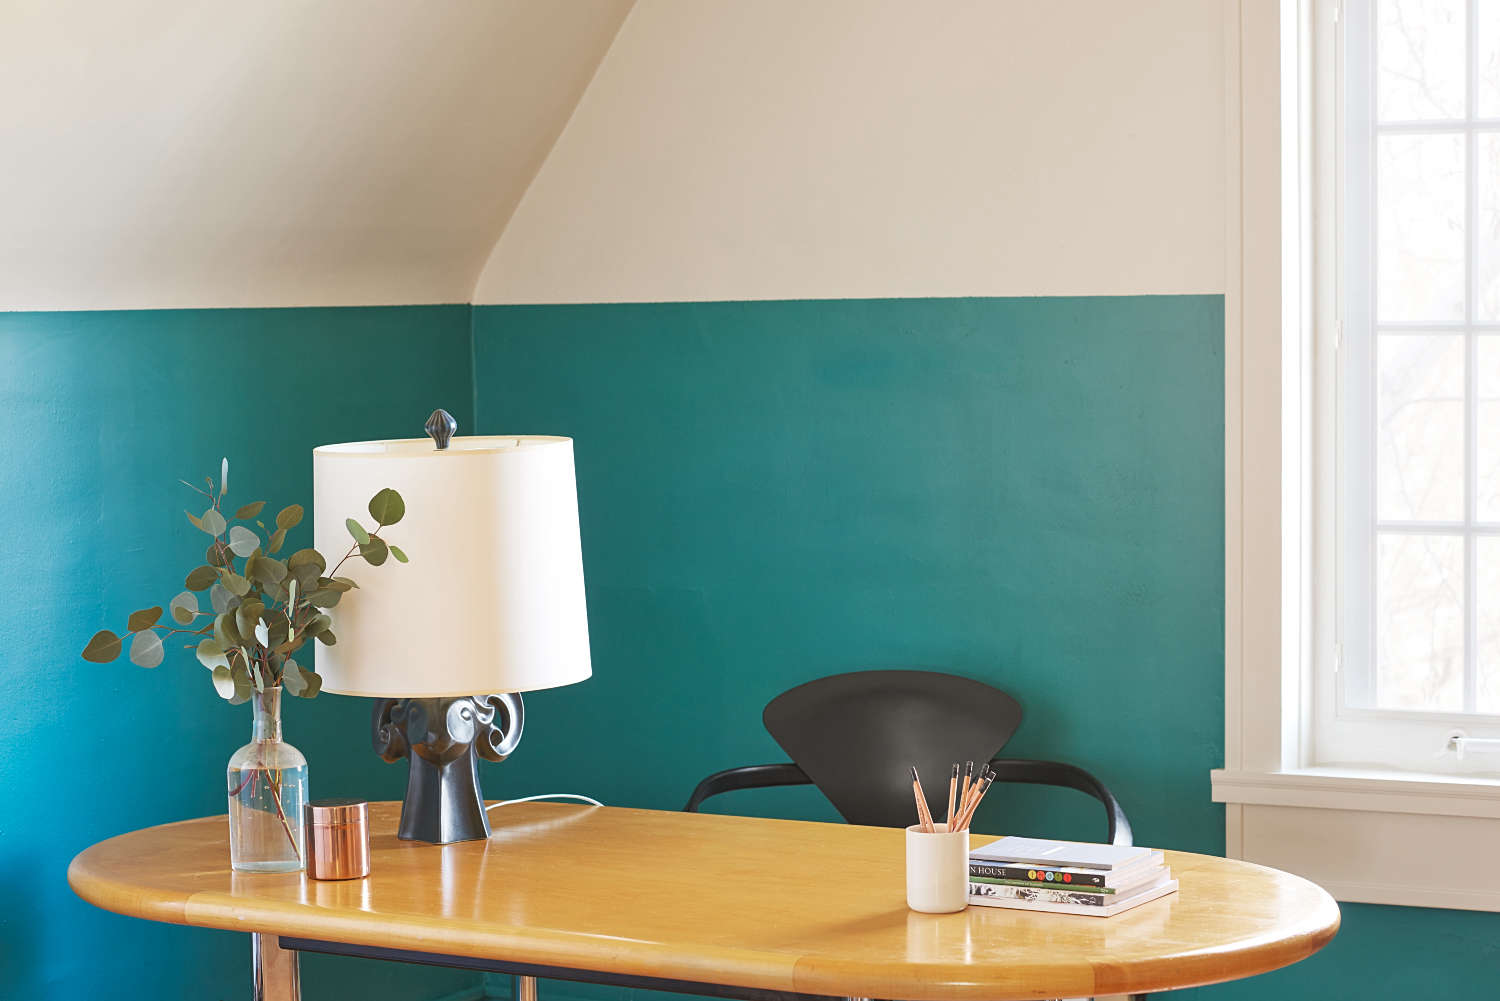 blu dot sofa karlstad bed uk a vibrant office update from farrow & ball - remodelista